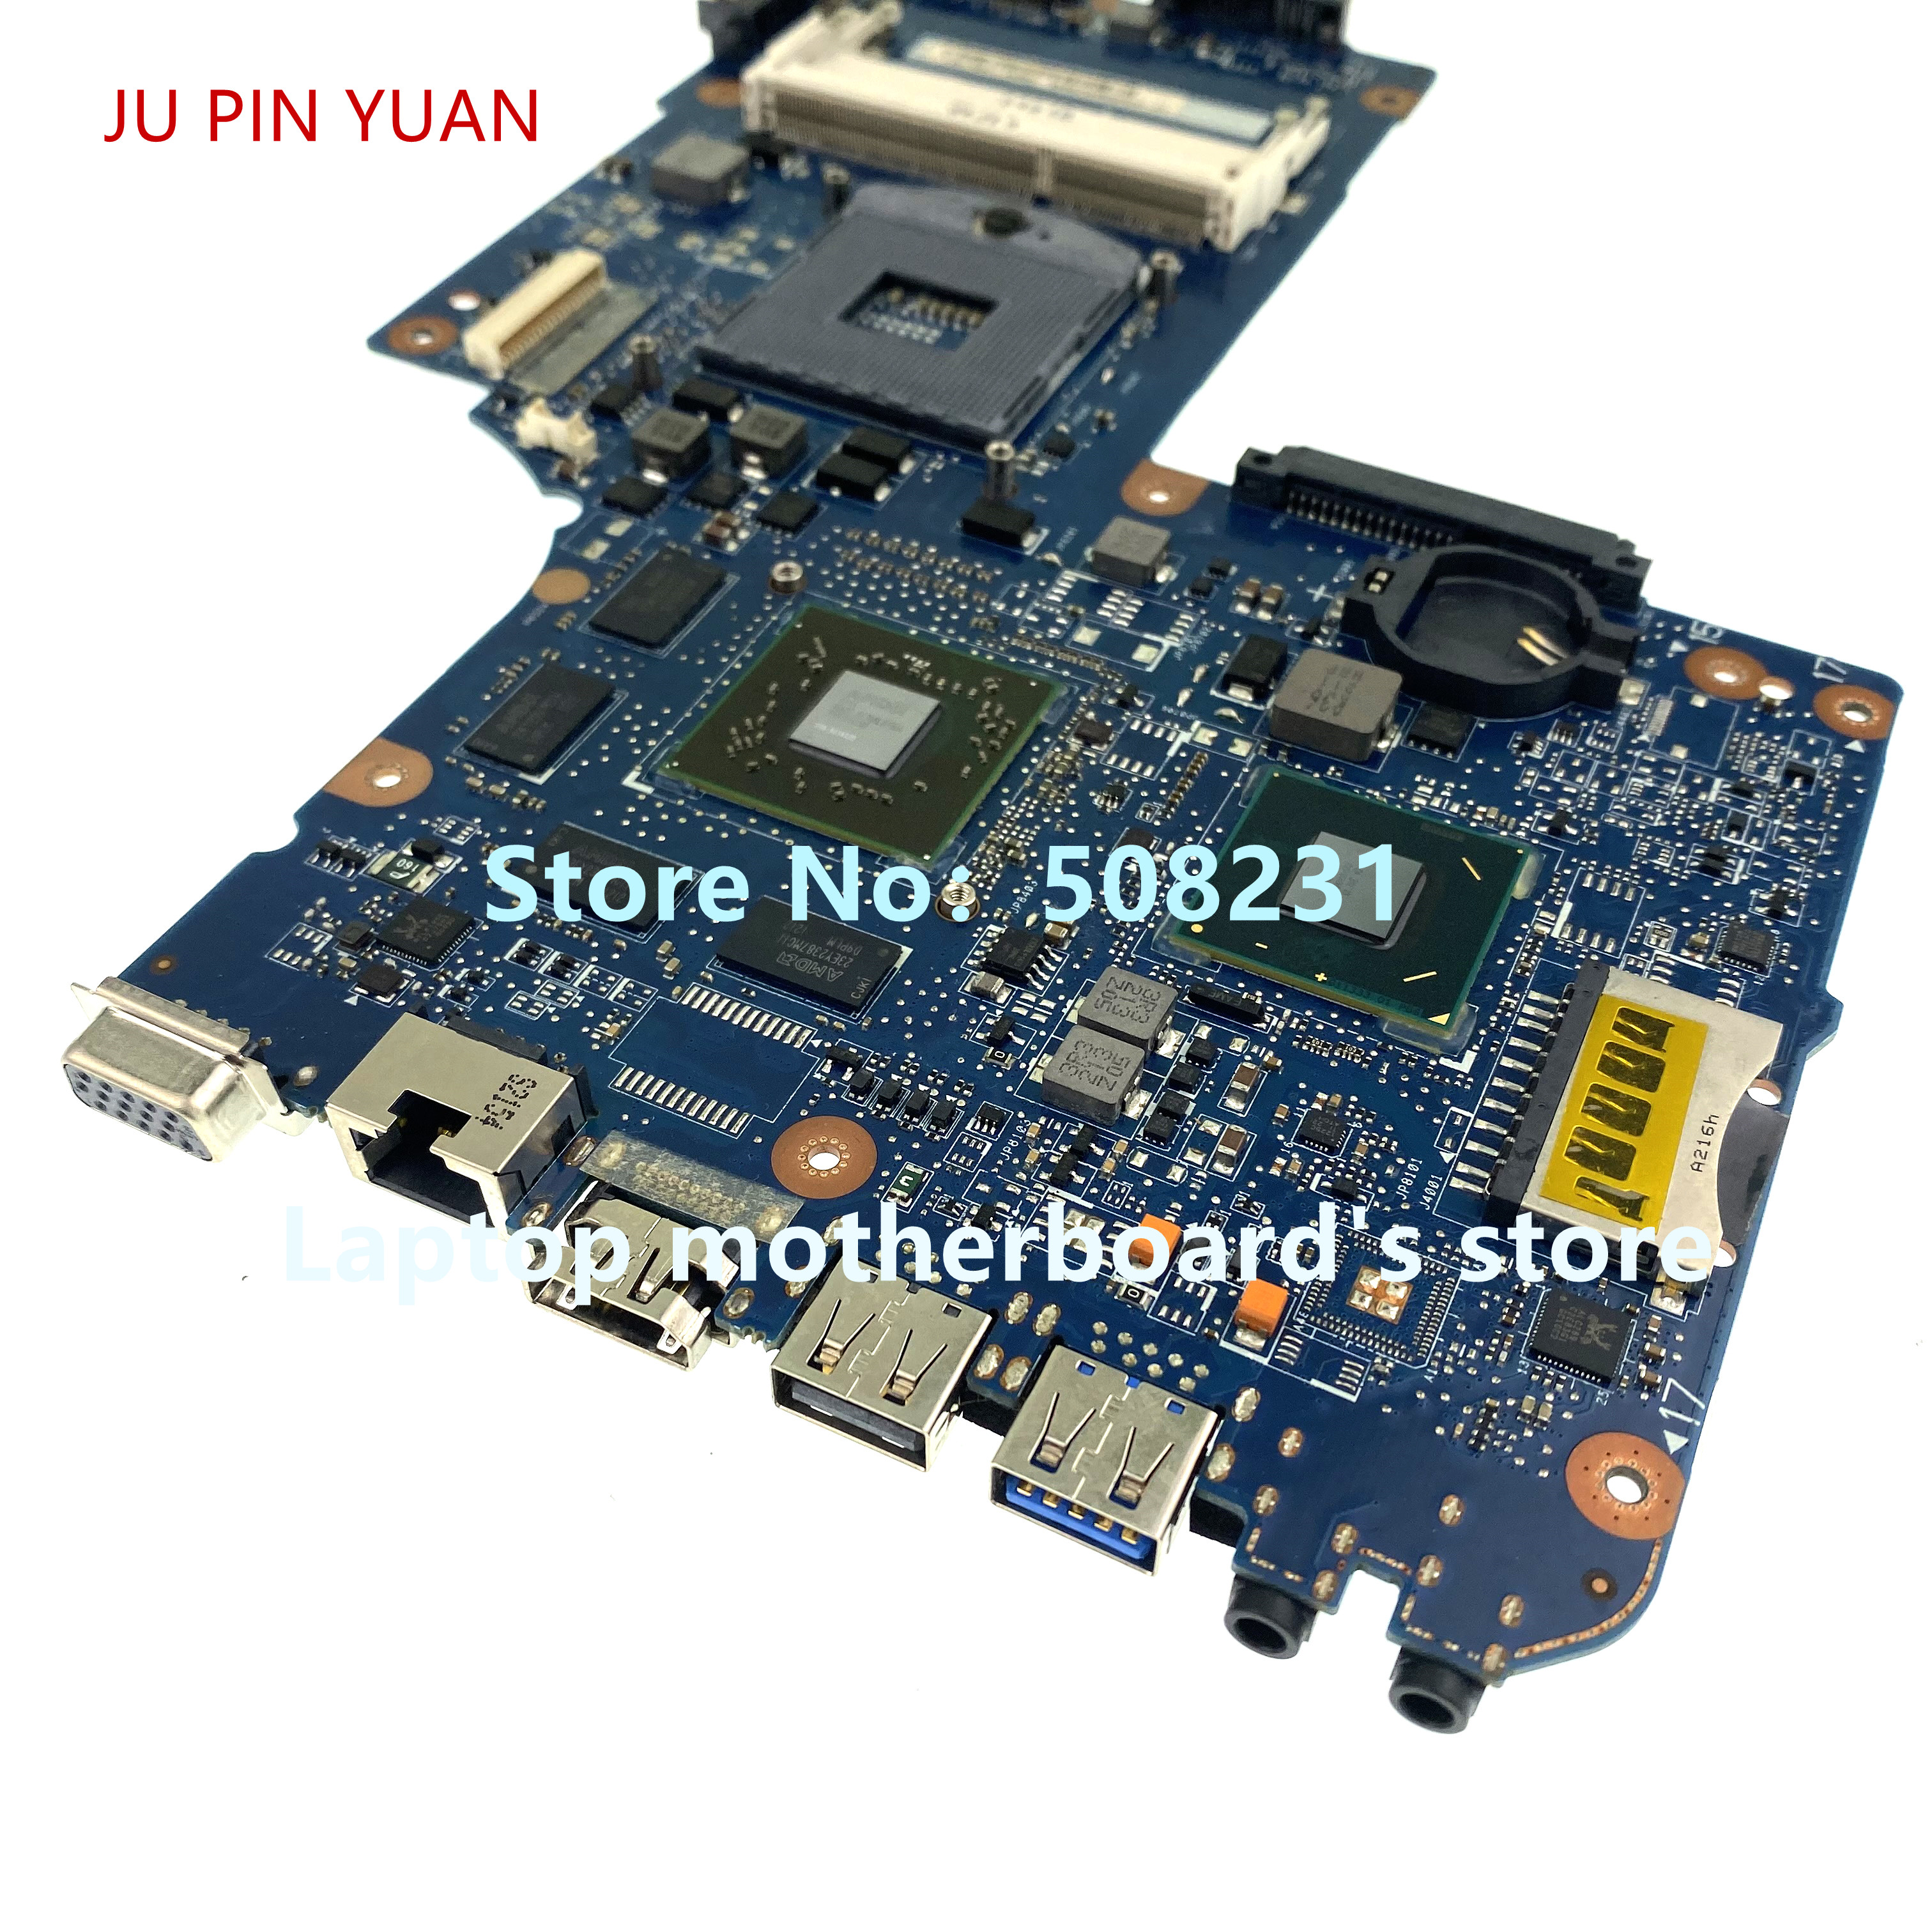 JU PIN YUAN H000052630 H000050770 For Toshiba Satellite L850 C850 C855 Laptop Motherboard 100% Fully Tested